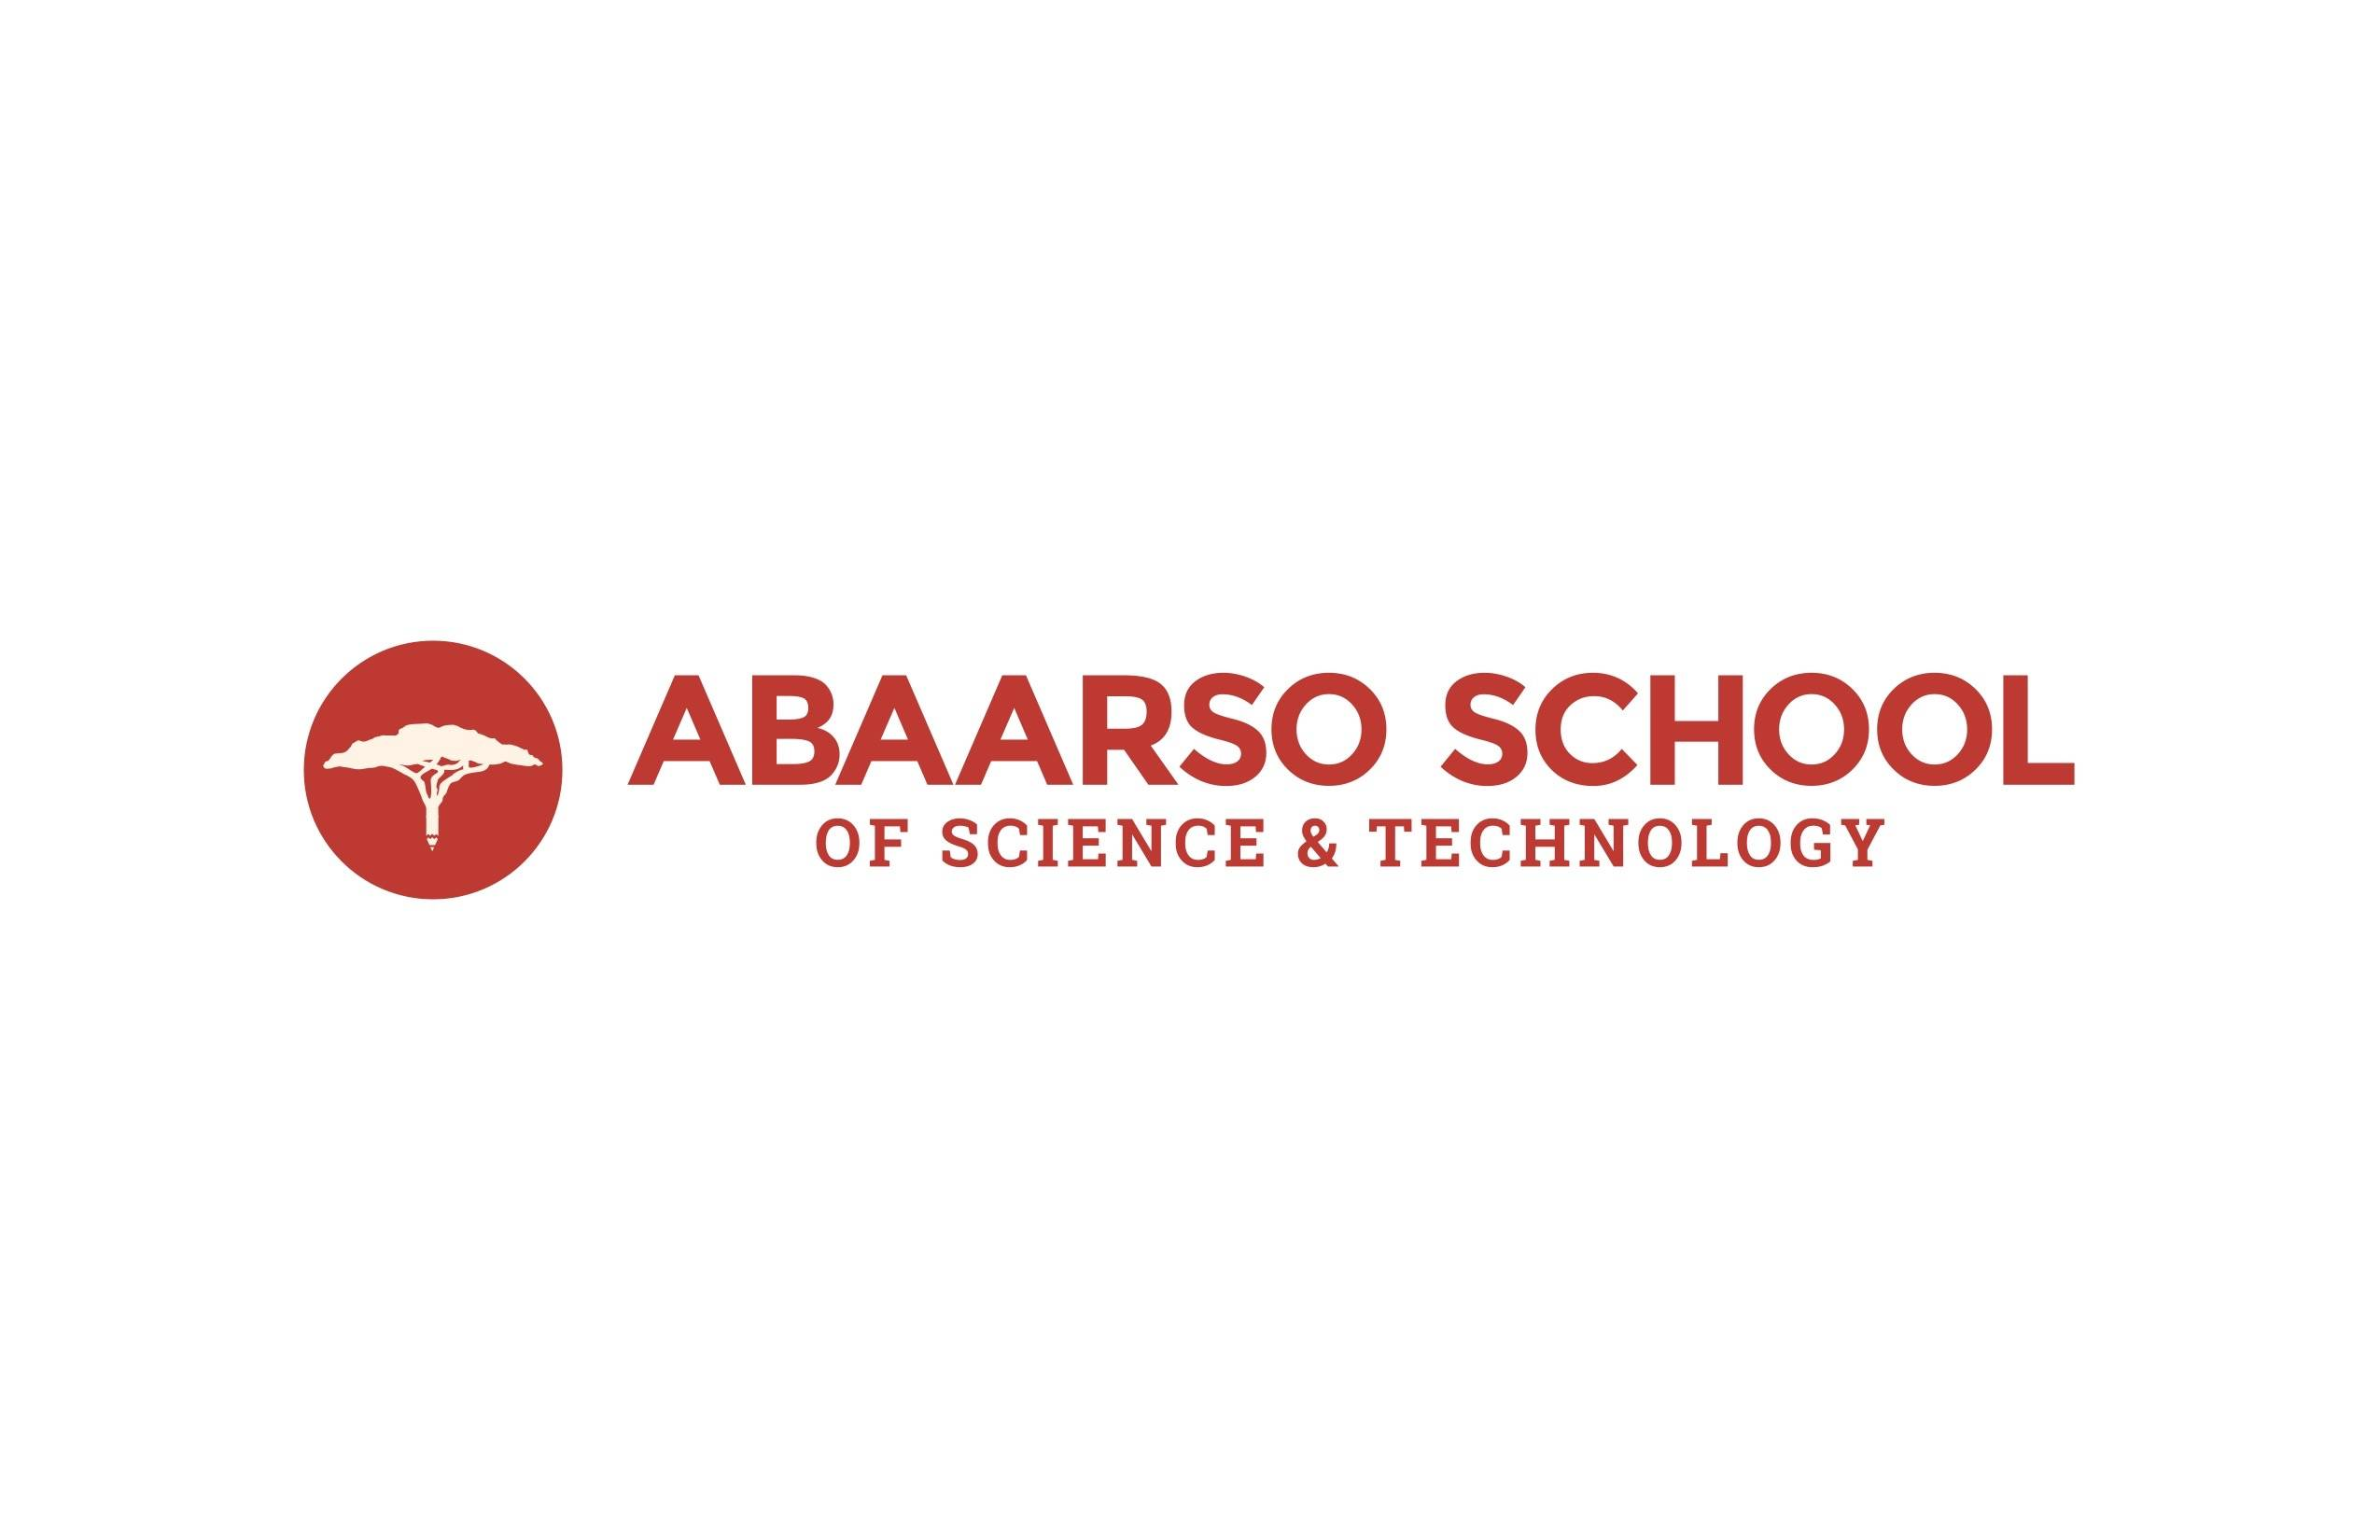 Logo de Abaarso School of Science and Technology